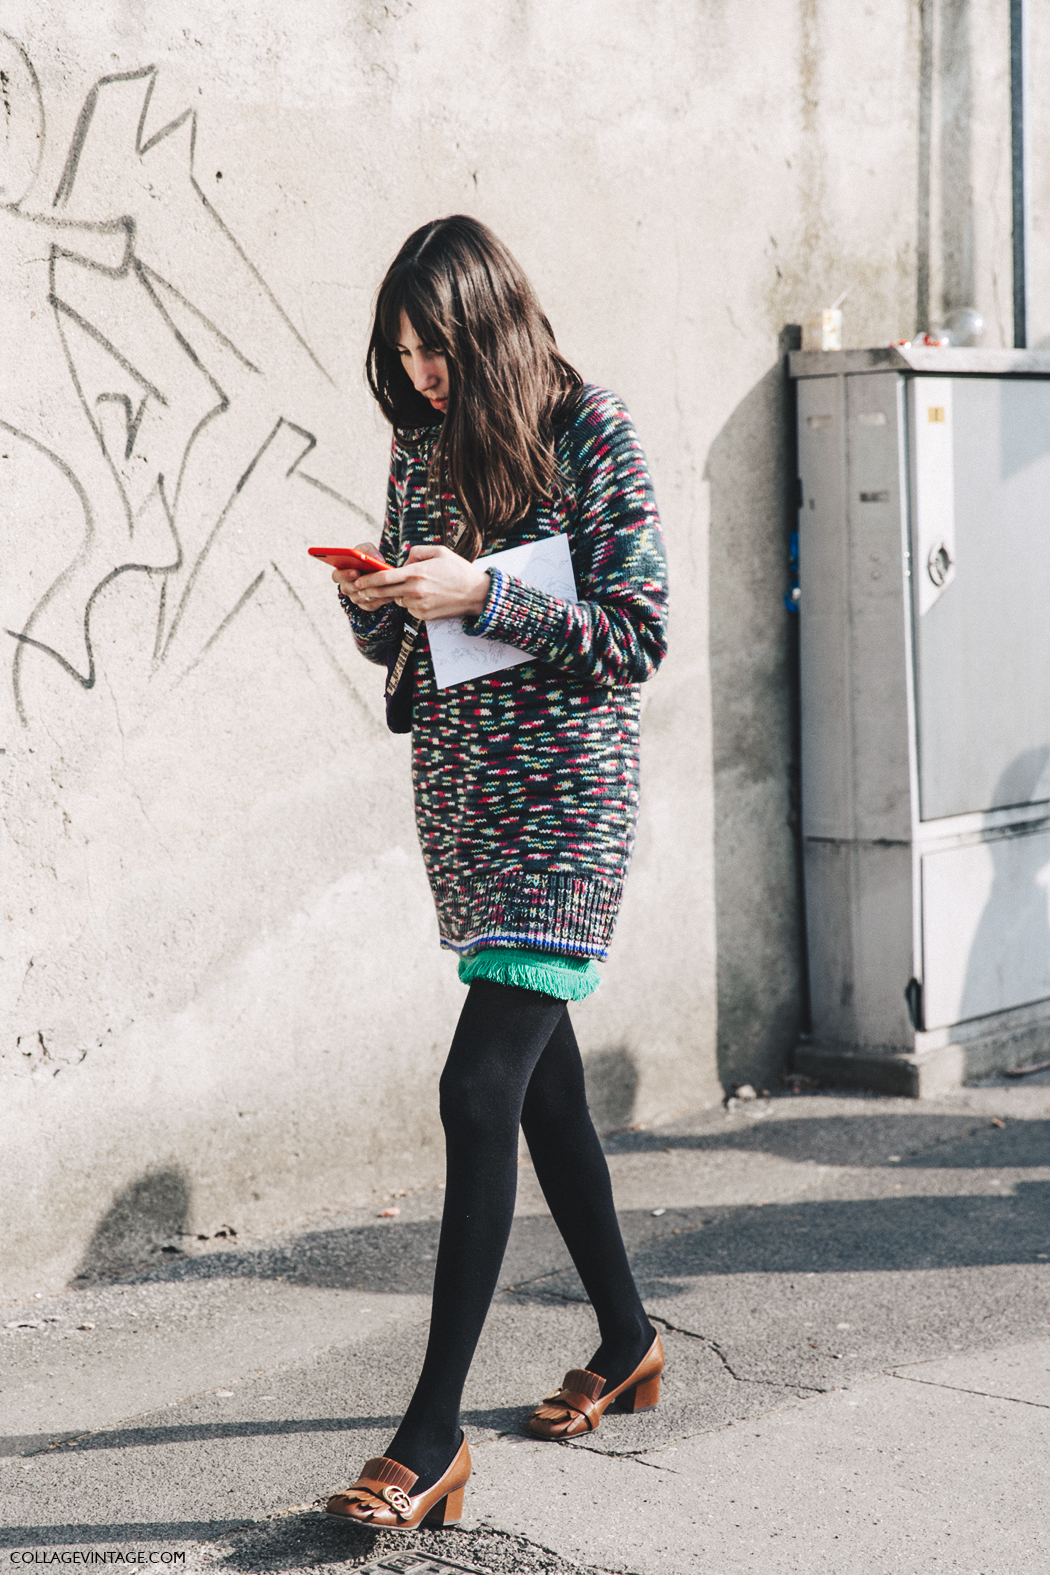 Milan_Fashion_Week_Fall_16-MFW-Street_Style-Collage_Vintage-Gucci_Shoes-